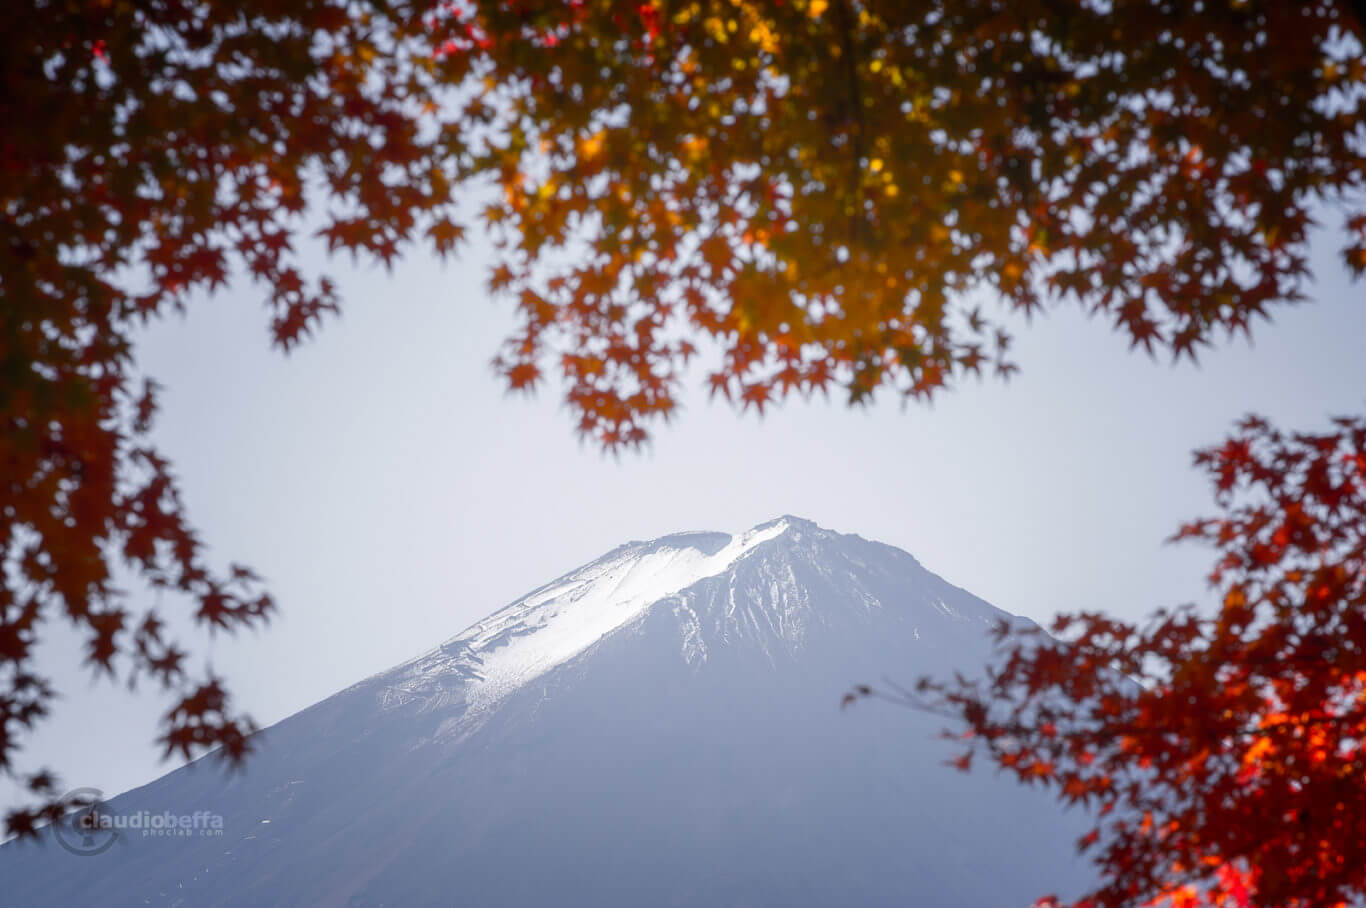 Mount Fuji, Fuji, Japan, Chubu, autumn, fall, momiji, Kawaguchiko, red, snow, Fuji peak, travel, phoclab